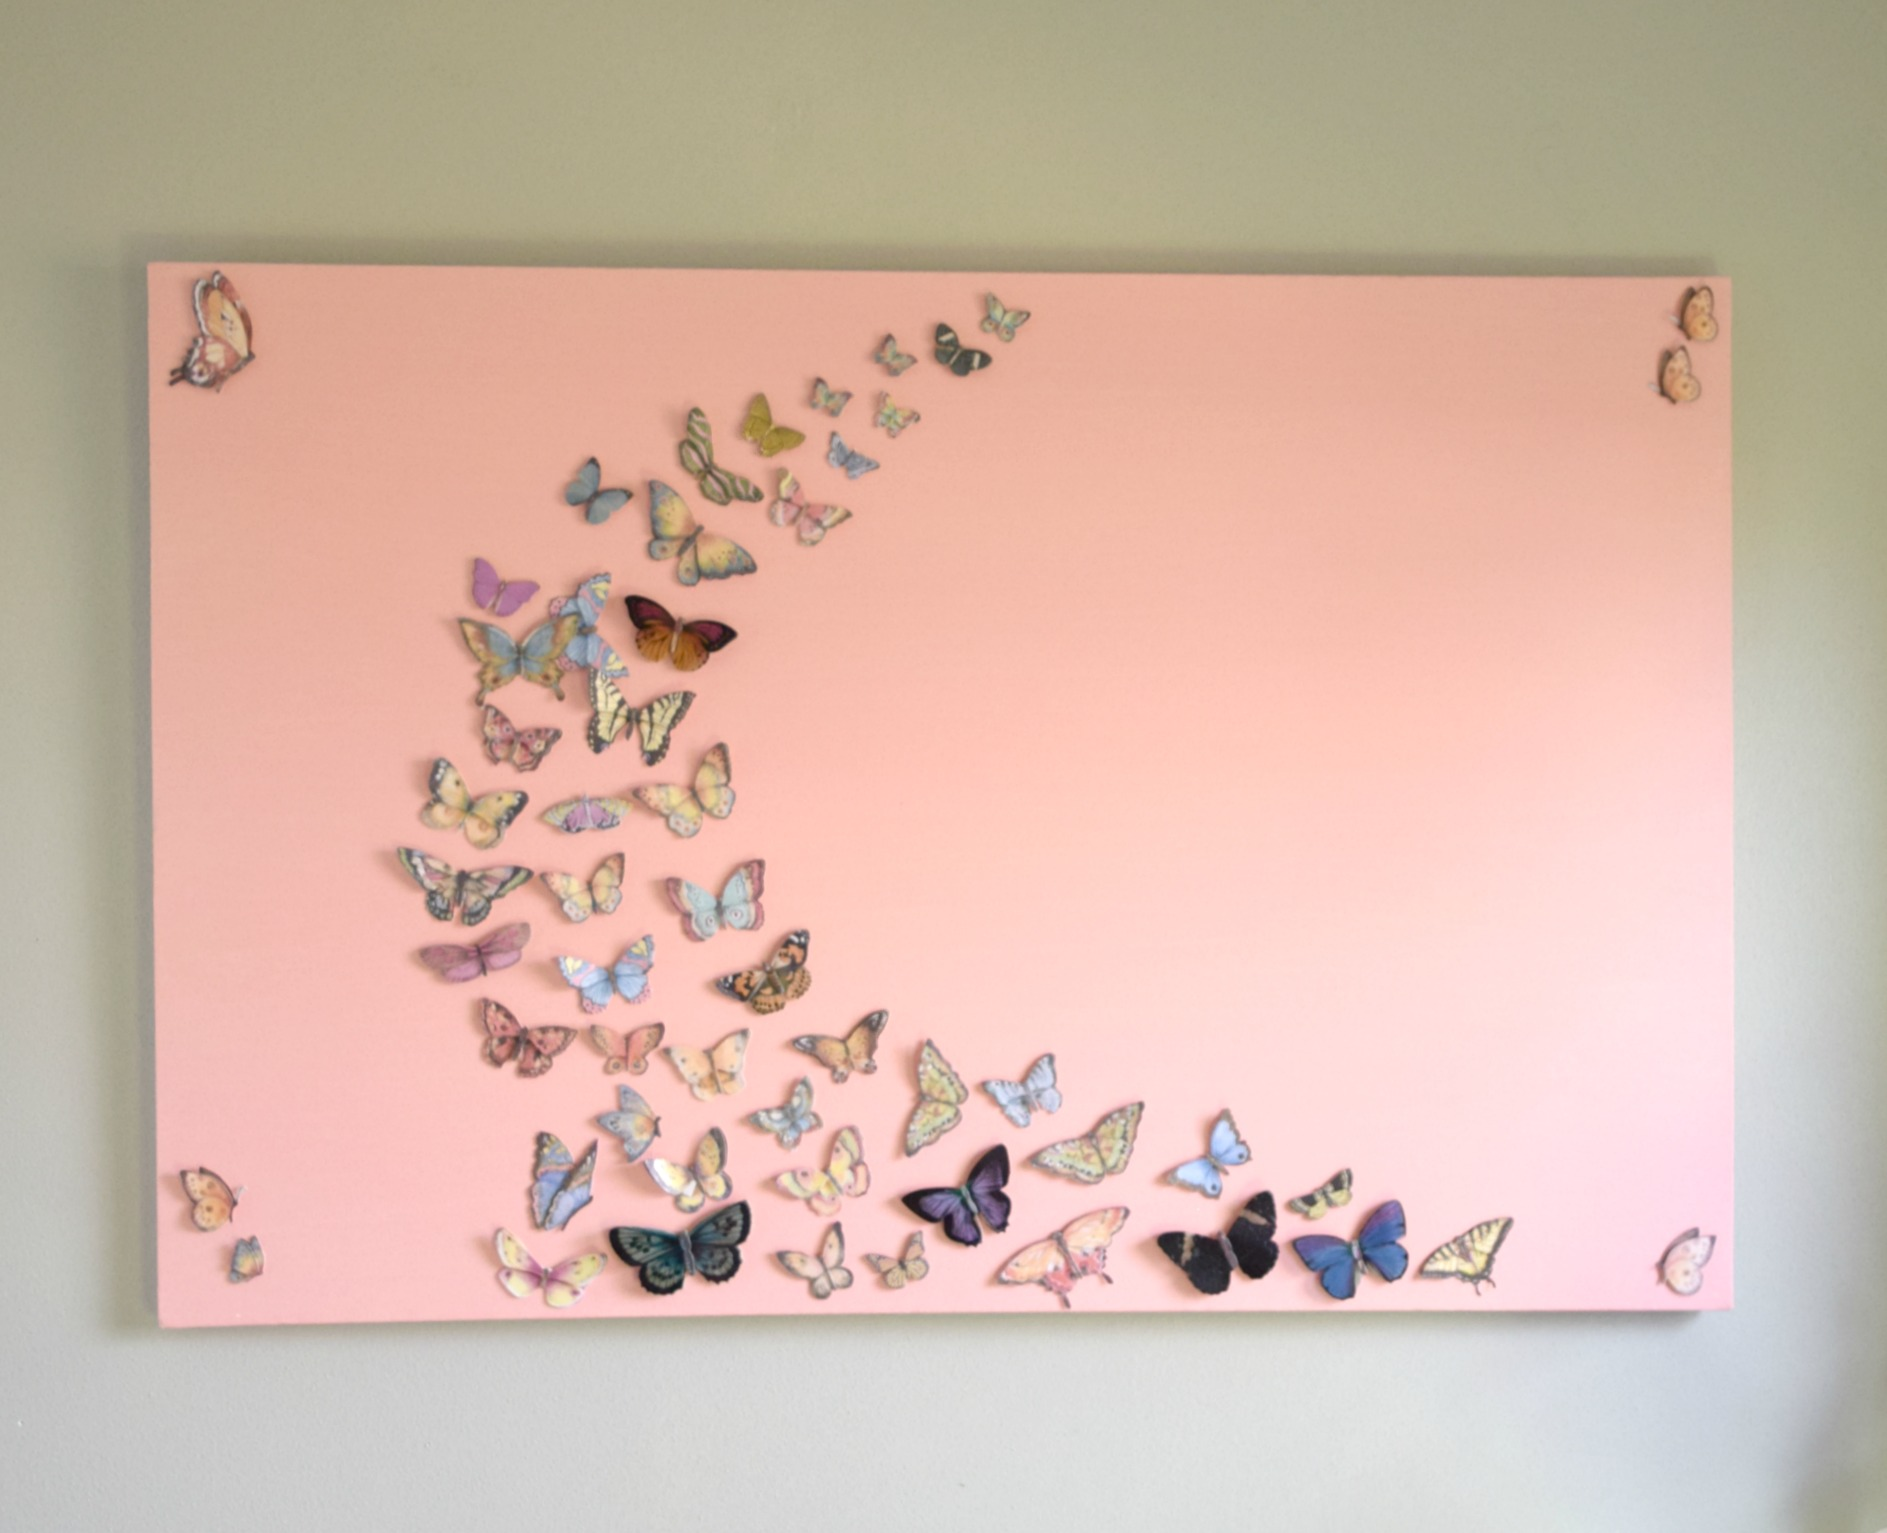 Art Decorating And Crafting Girl Bedroom Wall Art A Butterfly And Canvas Craft Our House Now